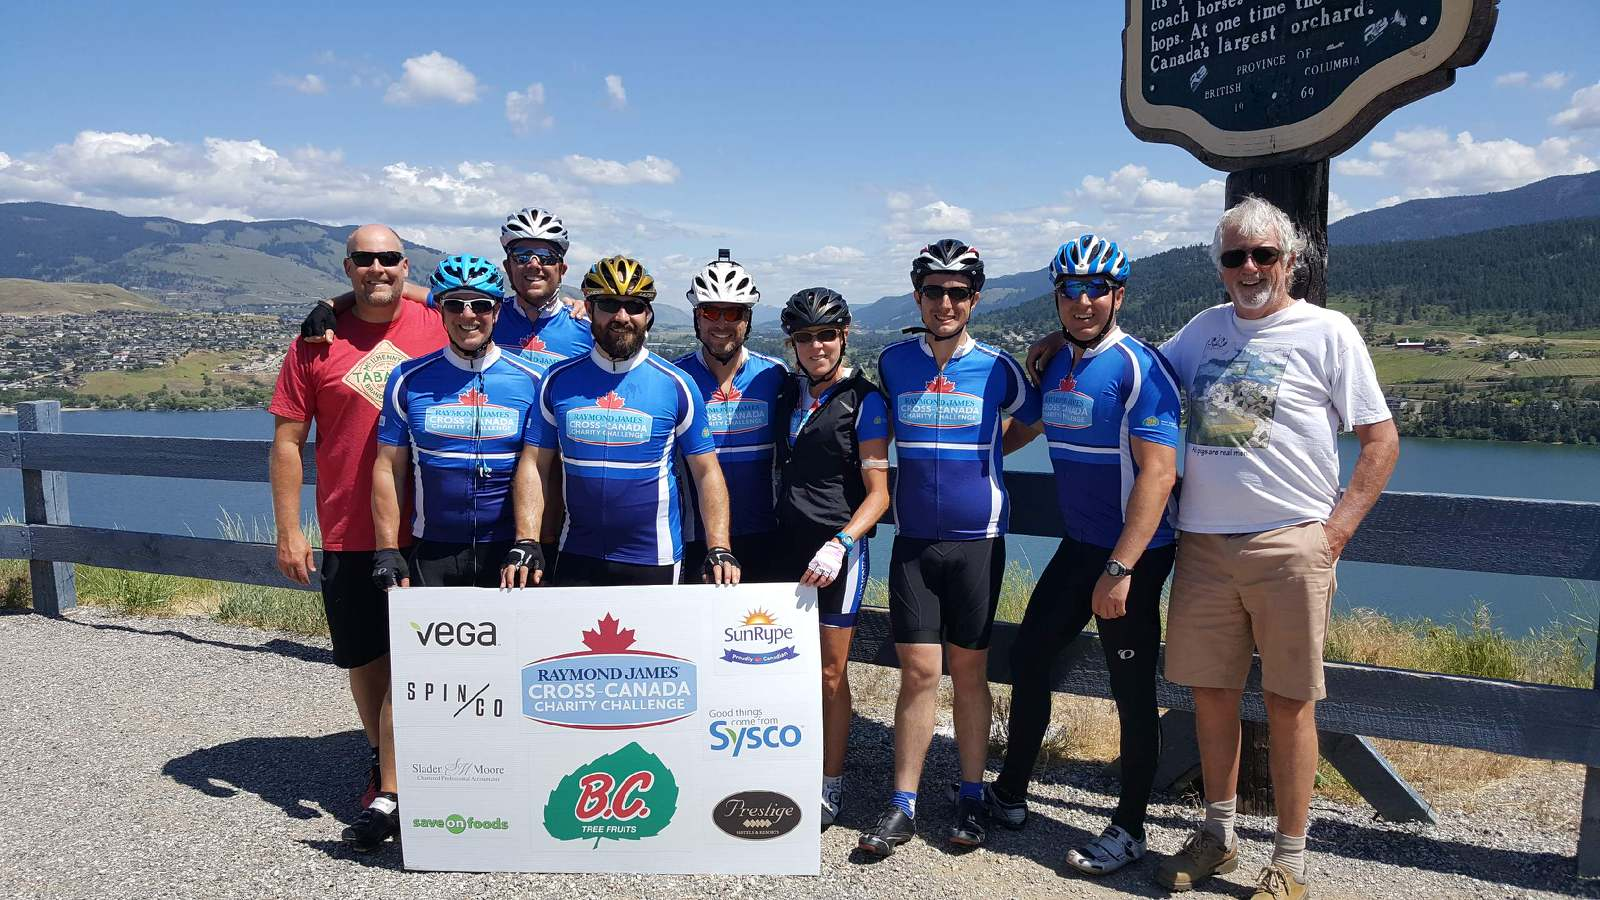 The Big Bike Ride BC team - over $27,000 raised for cancer research! Cross Canada Charity Challenge